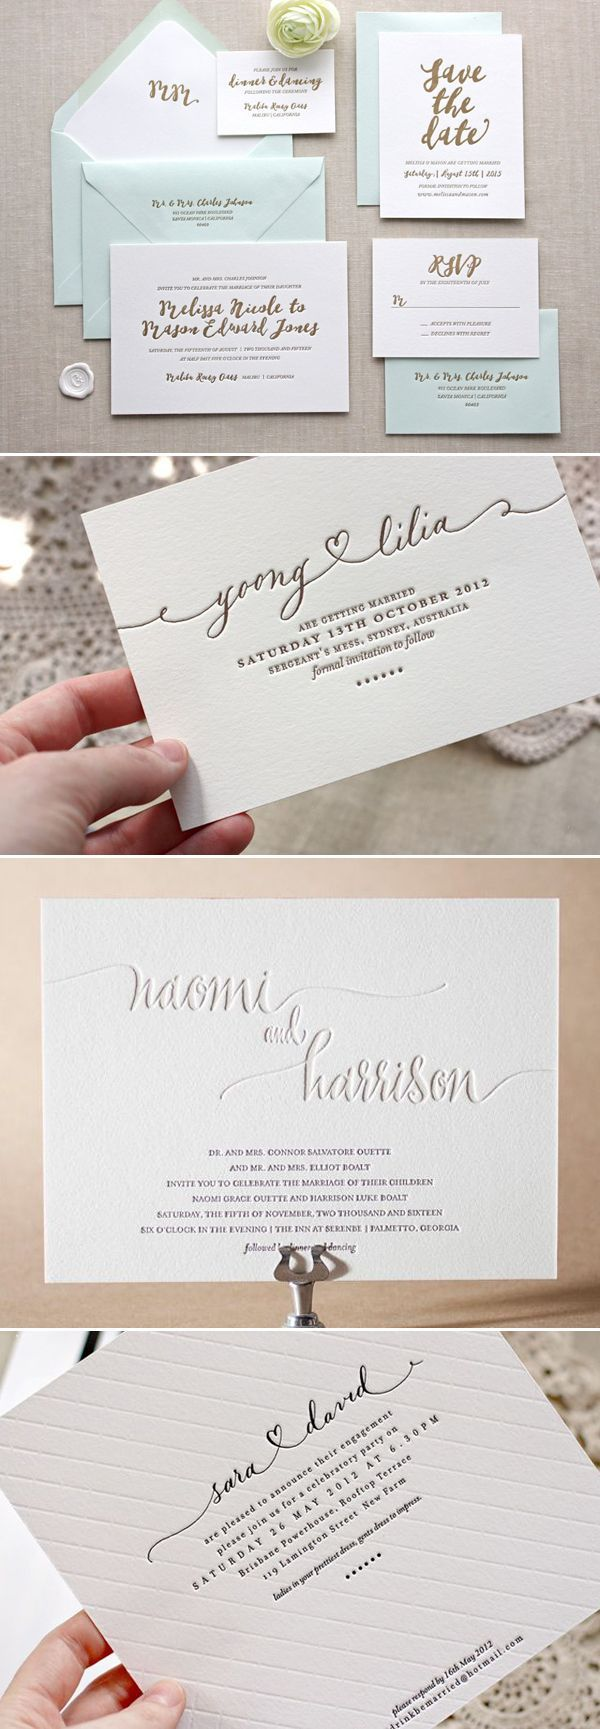 wedding invitation sample by email%0A Letterpress wedding invitations